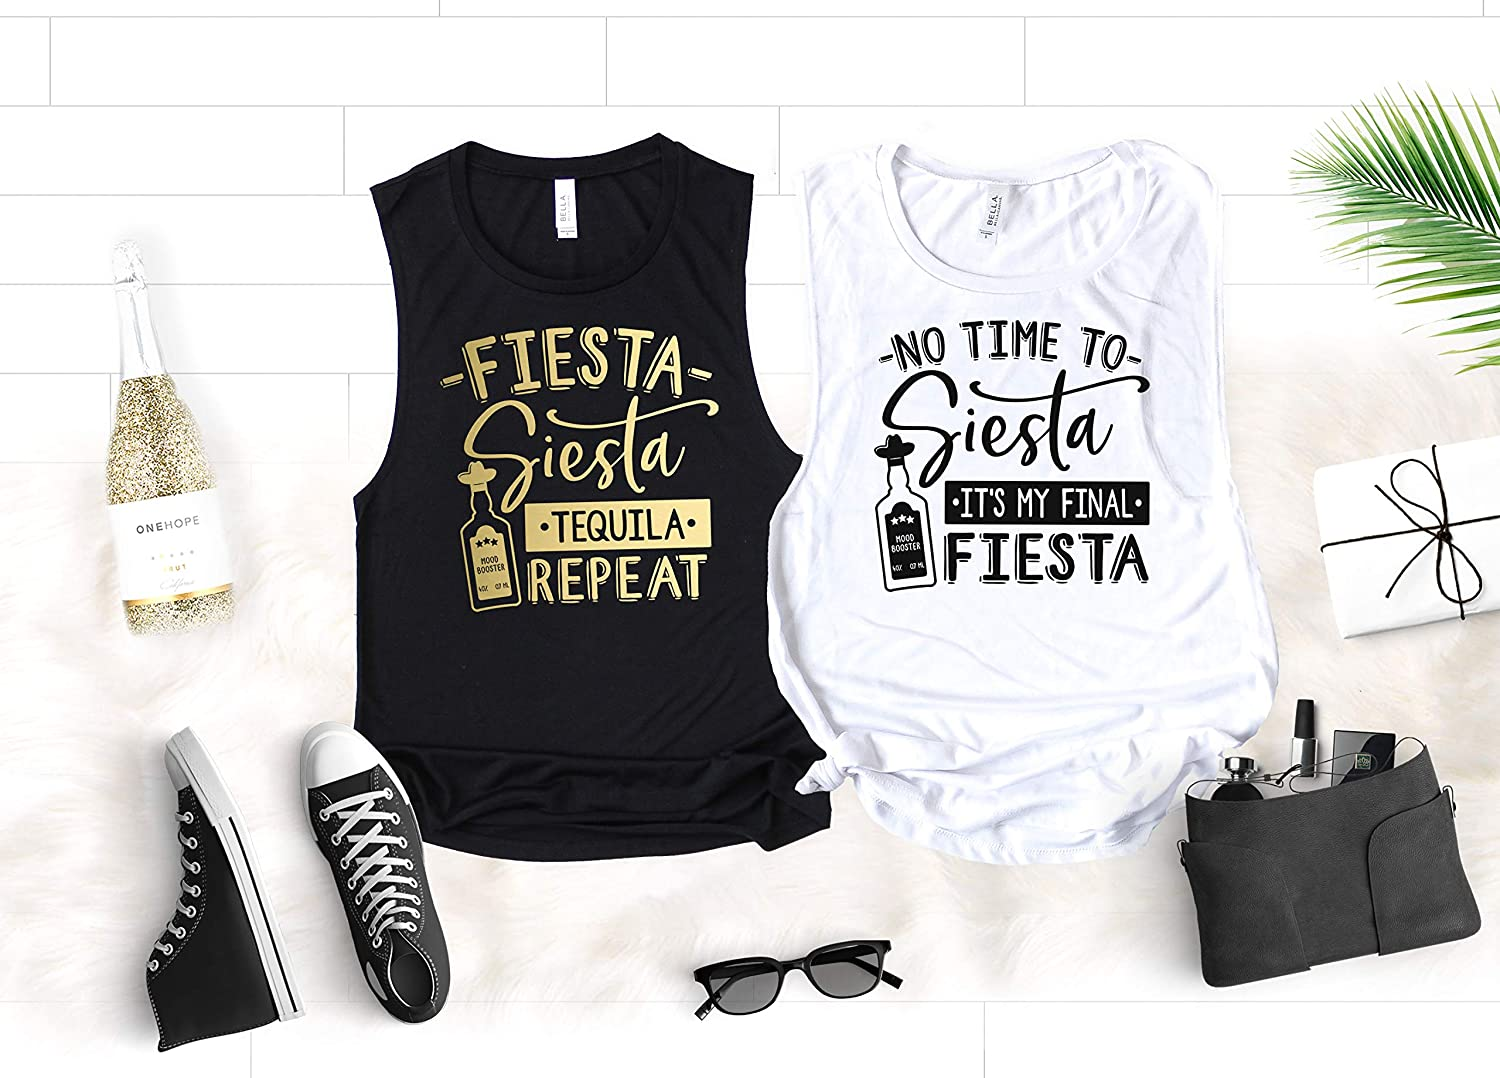 bffada056 Fiesta Bachelorette Party Shirts, Funny Cinco de Mayo Muscle Tanks for Bride  and Bridesmaids, No Time to Siesta It's My Final Fiesta and Fiesta Siesta  ...